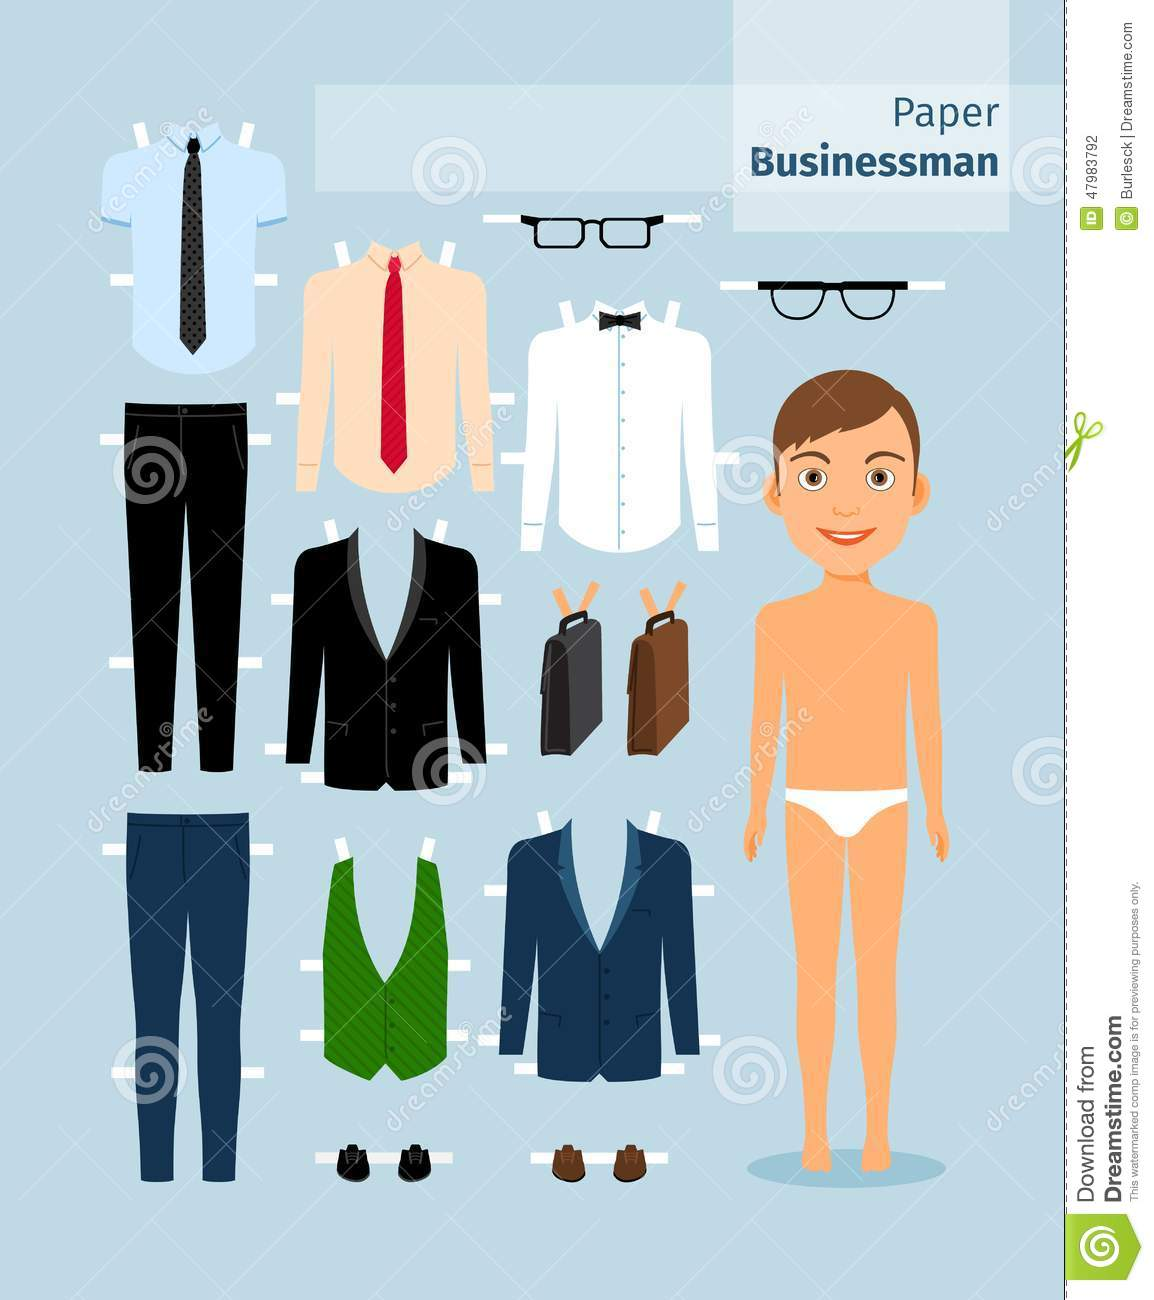 Paper Businessman Suit Shirt Glasses And Stock Vector